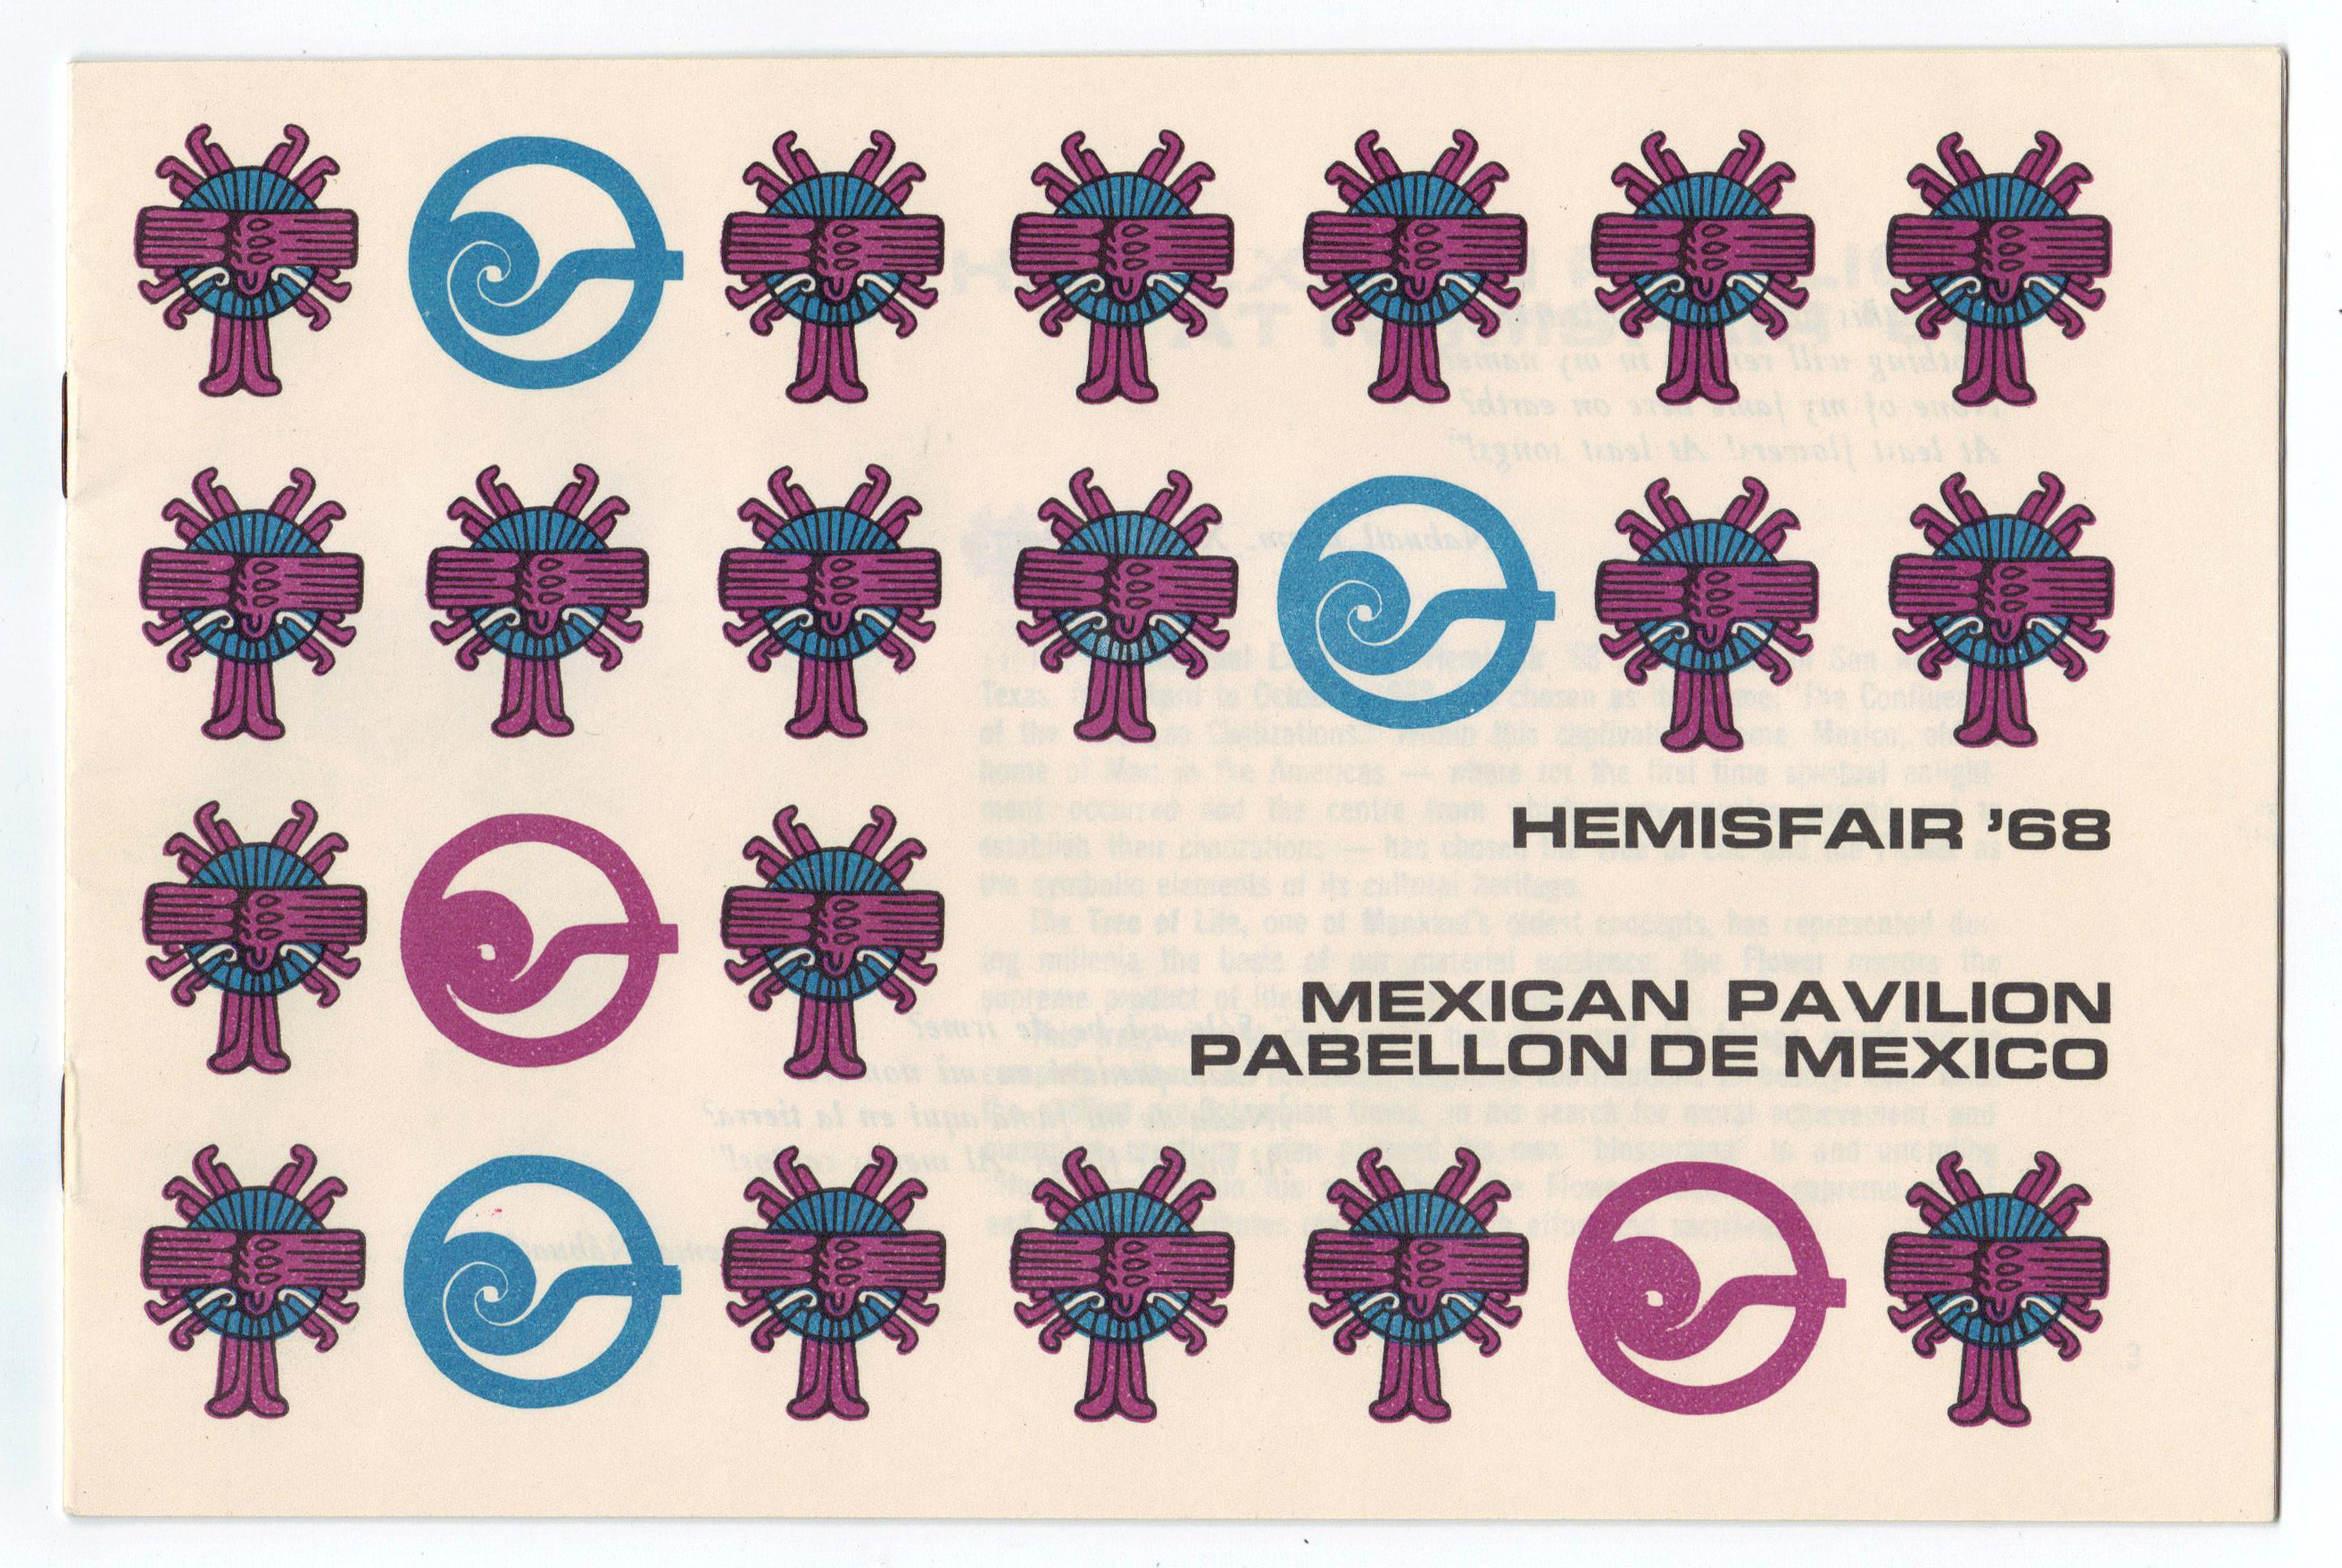 Object: Pamphlet (Mexican Pavilion Pamphlet for Hemisfair '68) | UTSA Institute Of Texan Cultures